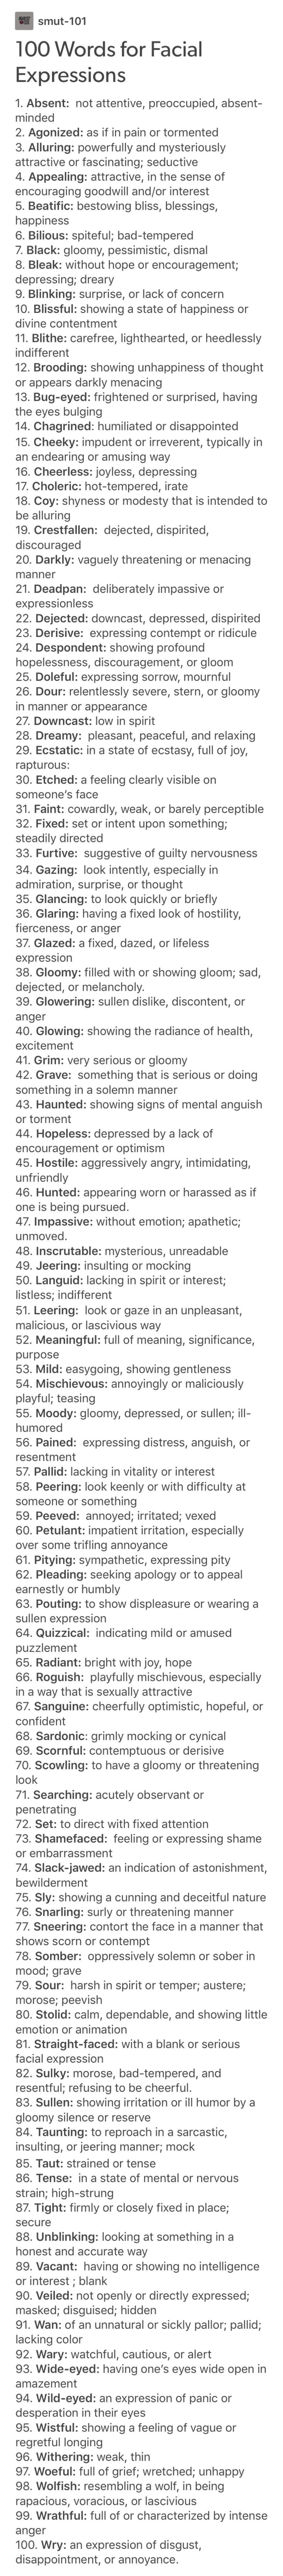 Pin By Bethanie Selke On Book Tips Pinterest Descriptive Words - Sentences might 5 words long will chill bone